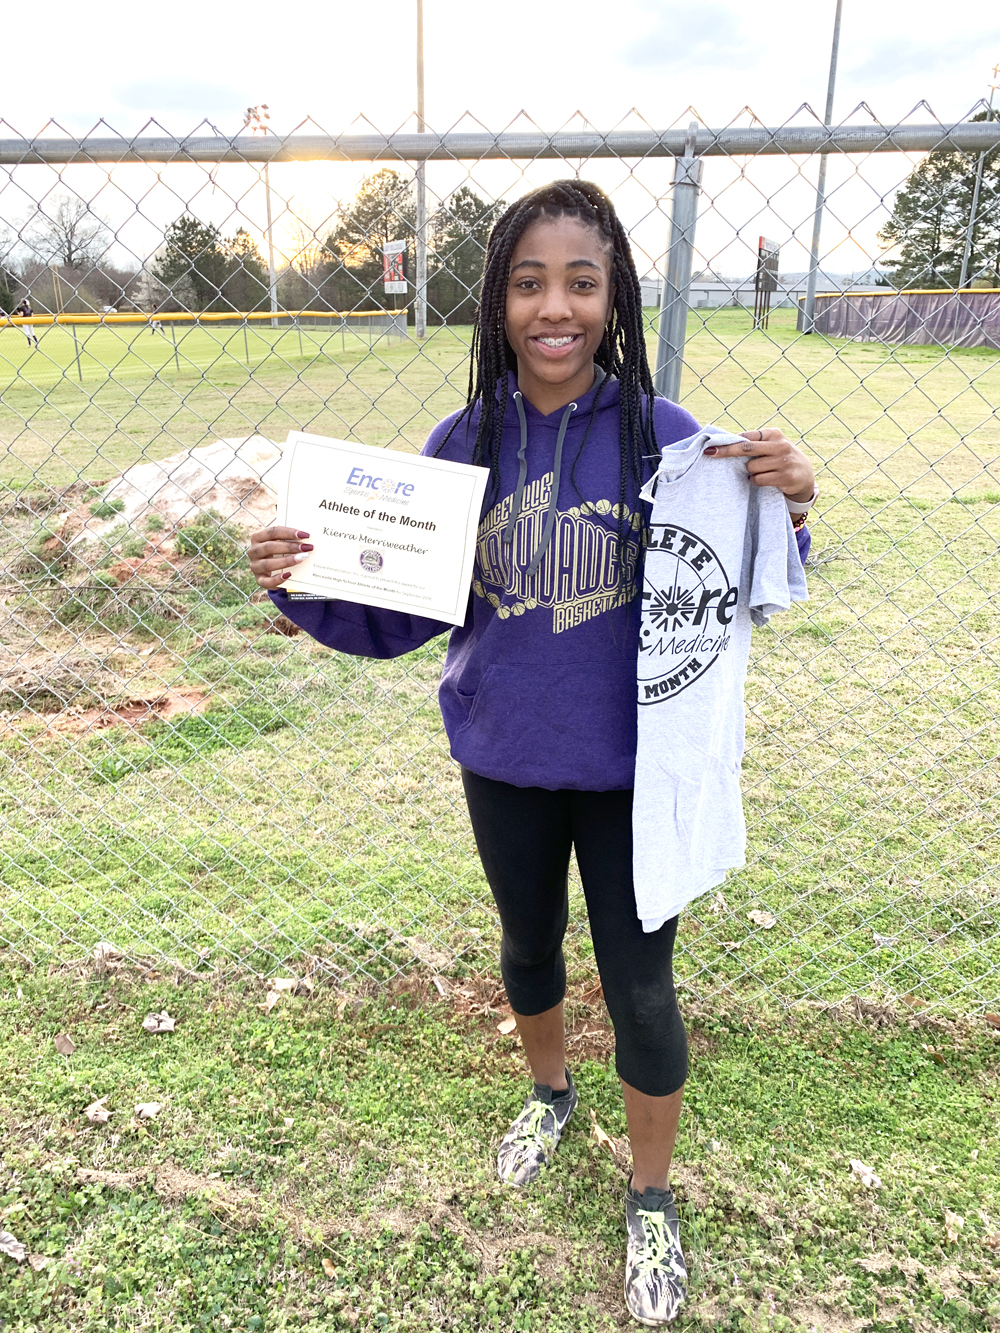 Kierra Merriweather is Athlete of the Month for Hanceville High School and Encore Rehabilitation-Cullman #EncoreRehab